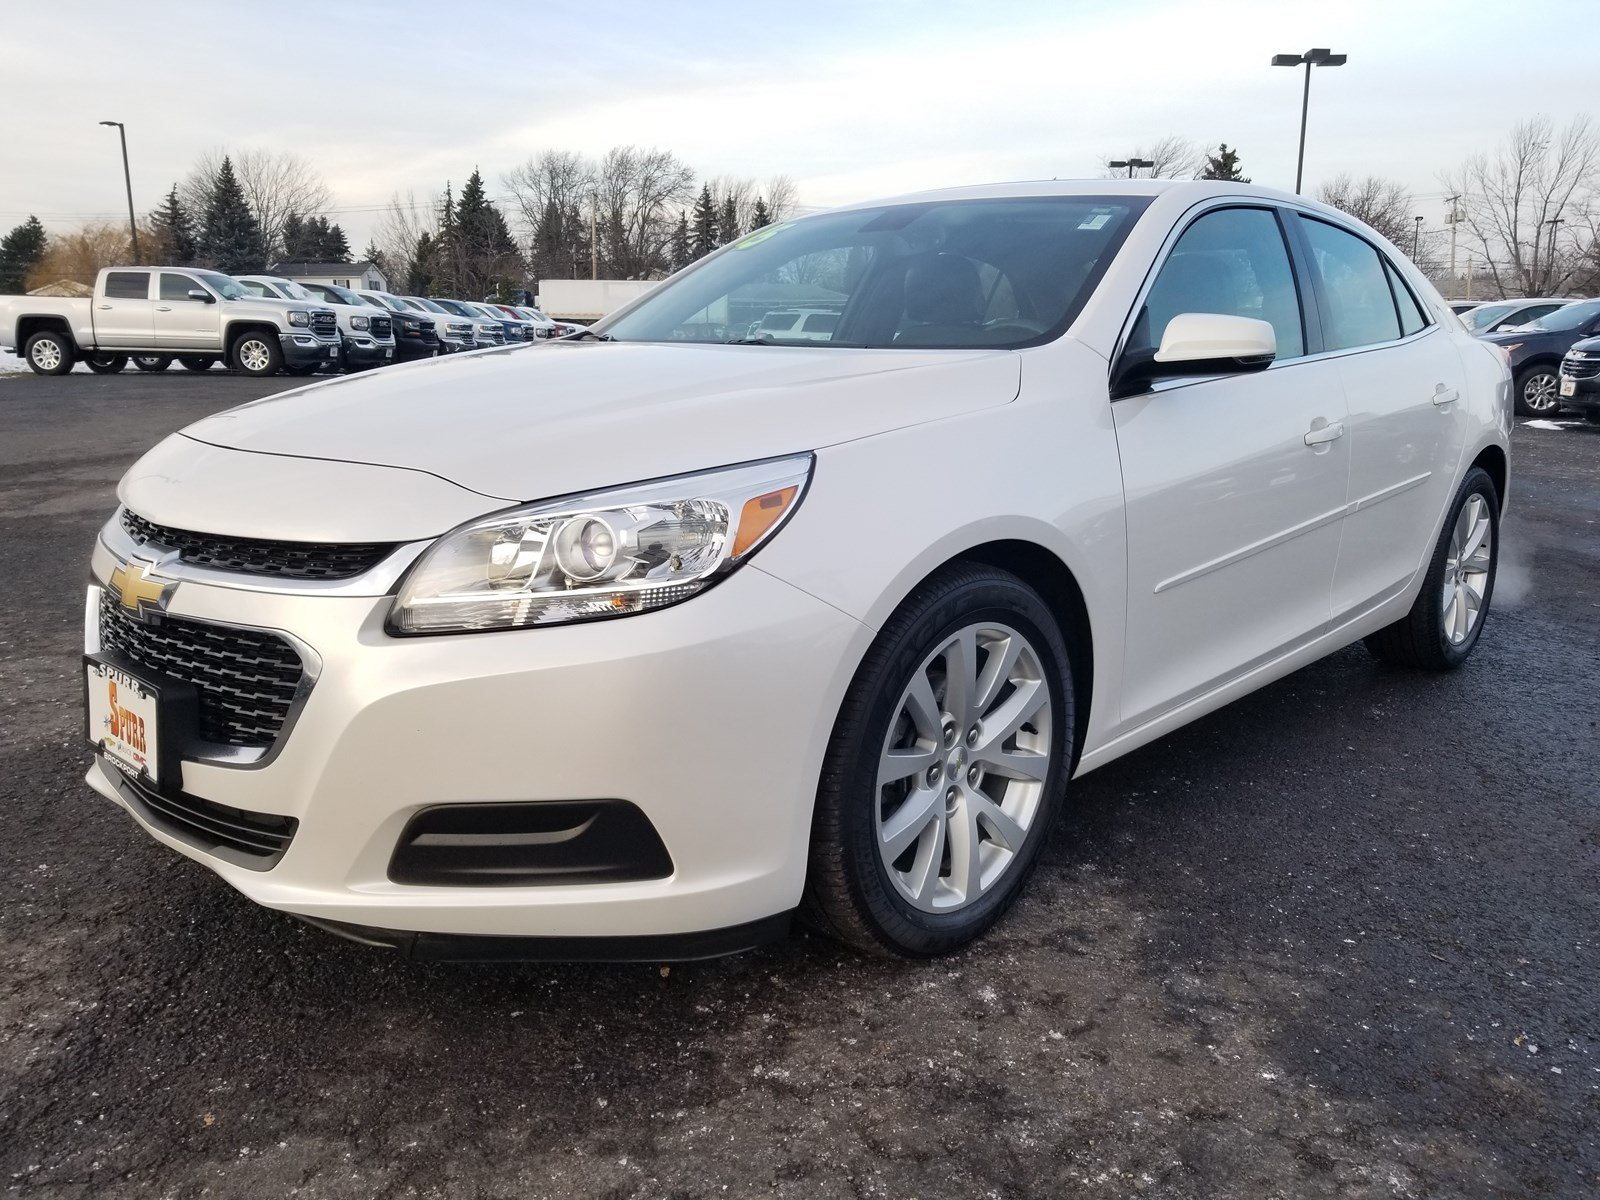 Used 2015 Chevrolet Malibu For Sale in Brockport Near Rochester NY